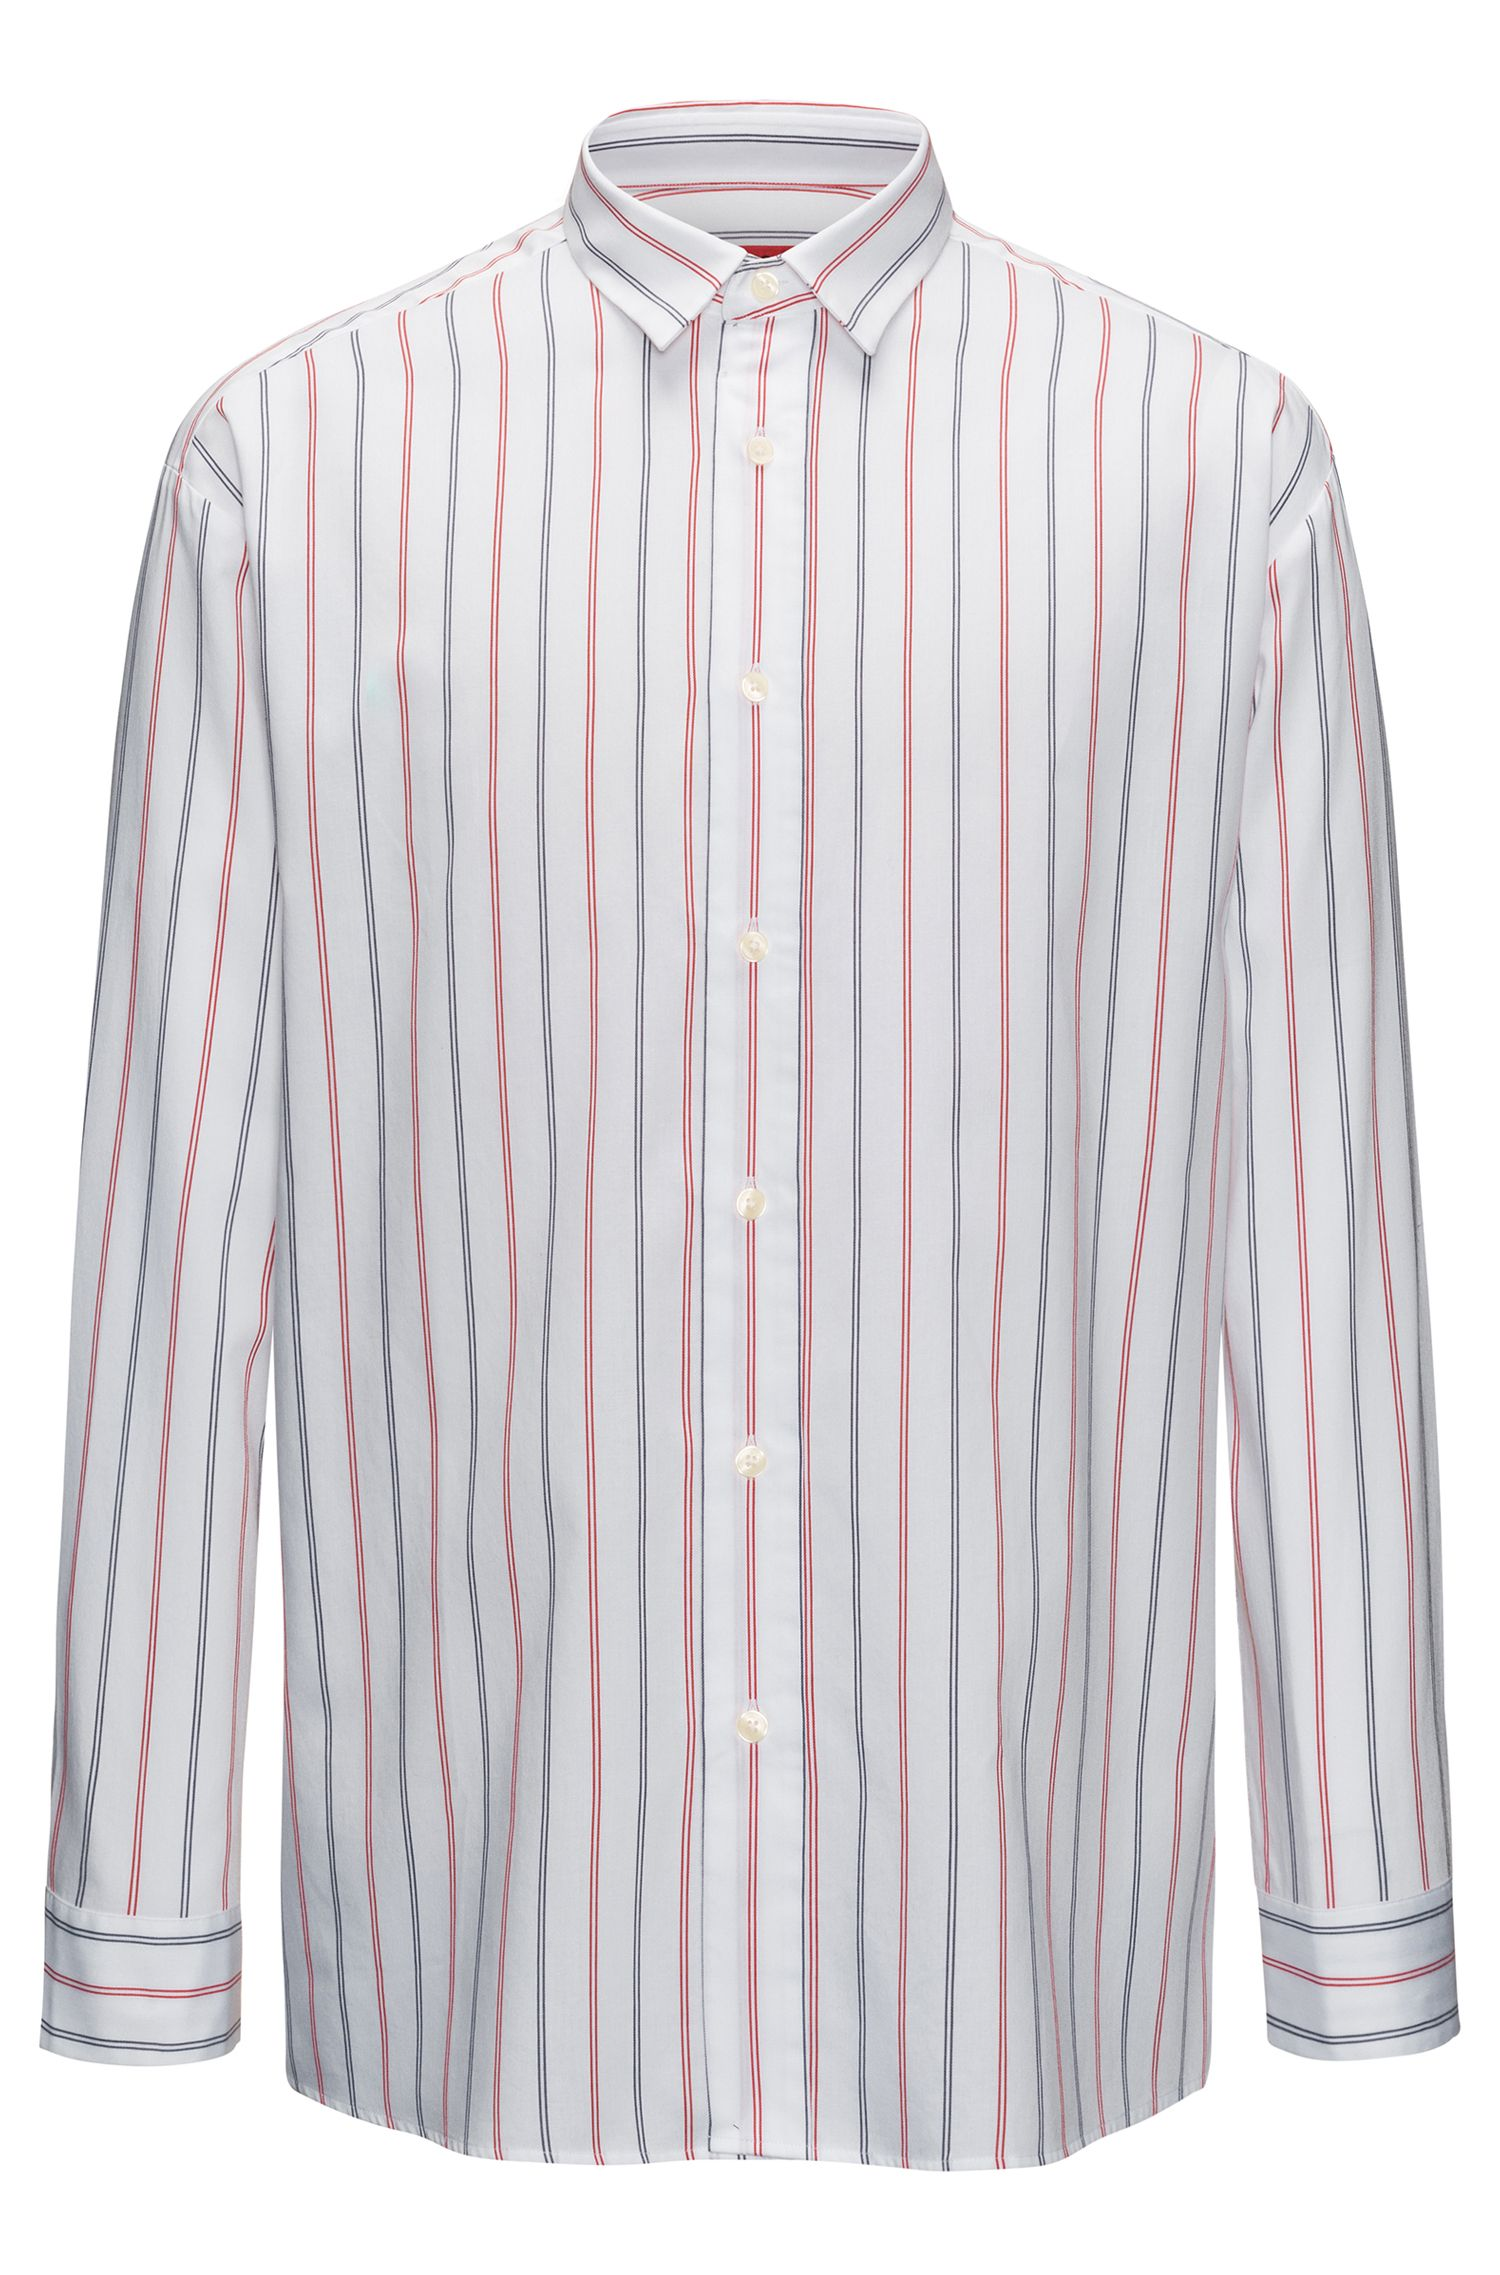 Striped Sport Shirt, Relaxed FIt | Emilton, Red